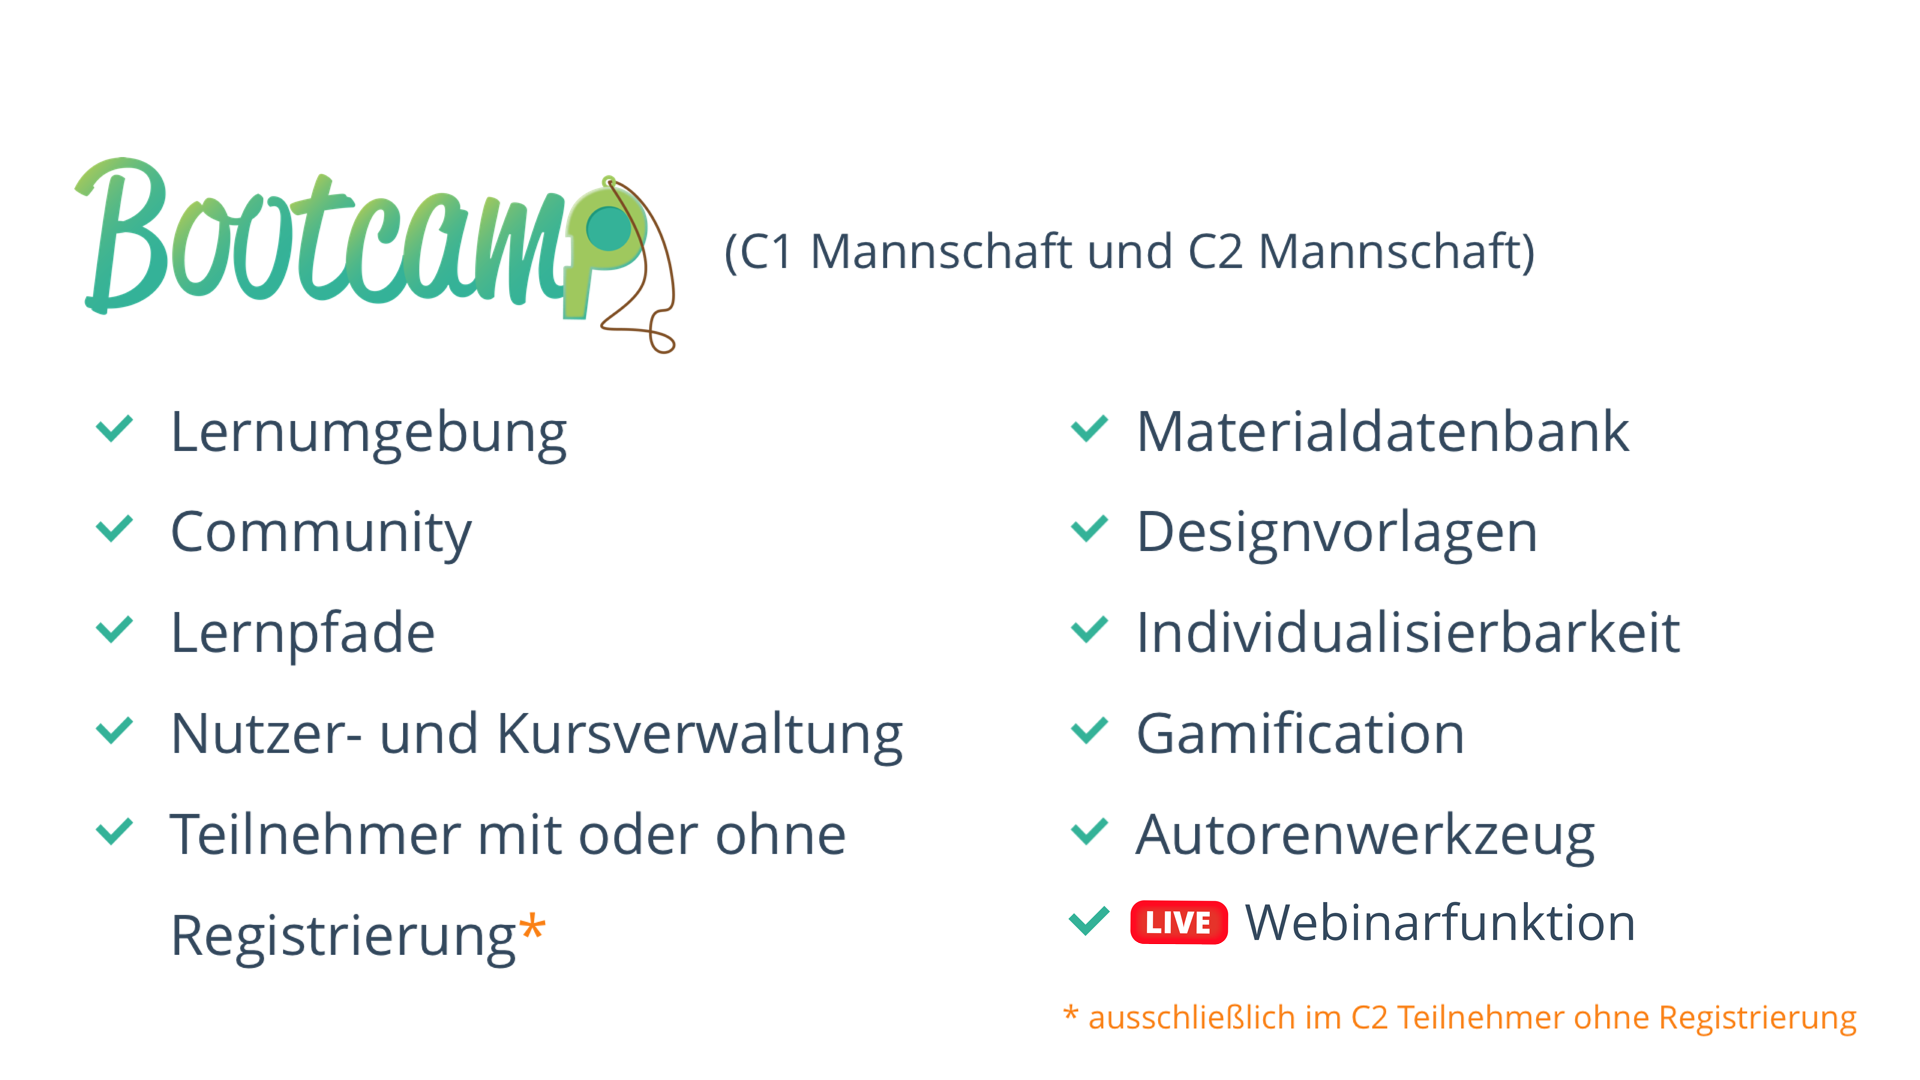 Webinarfunktion in einem Lermanagementsystem